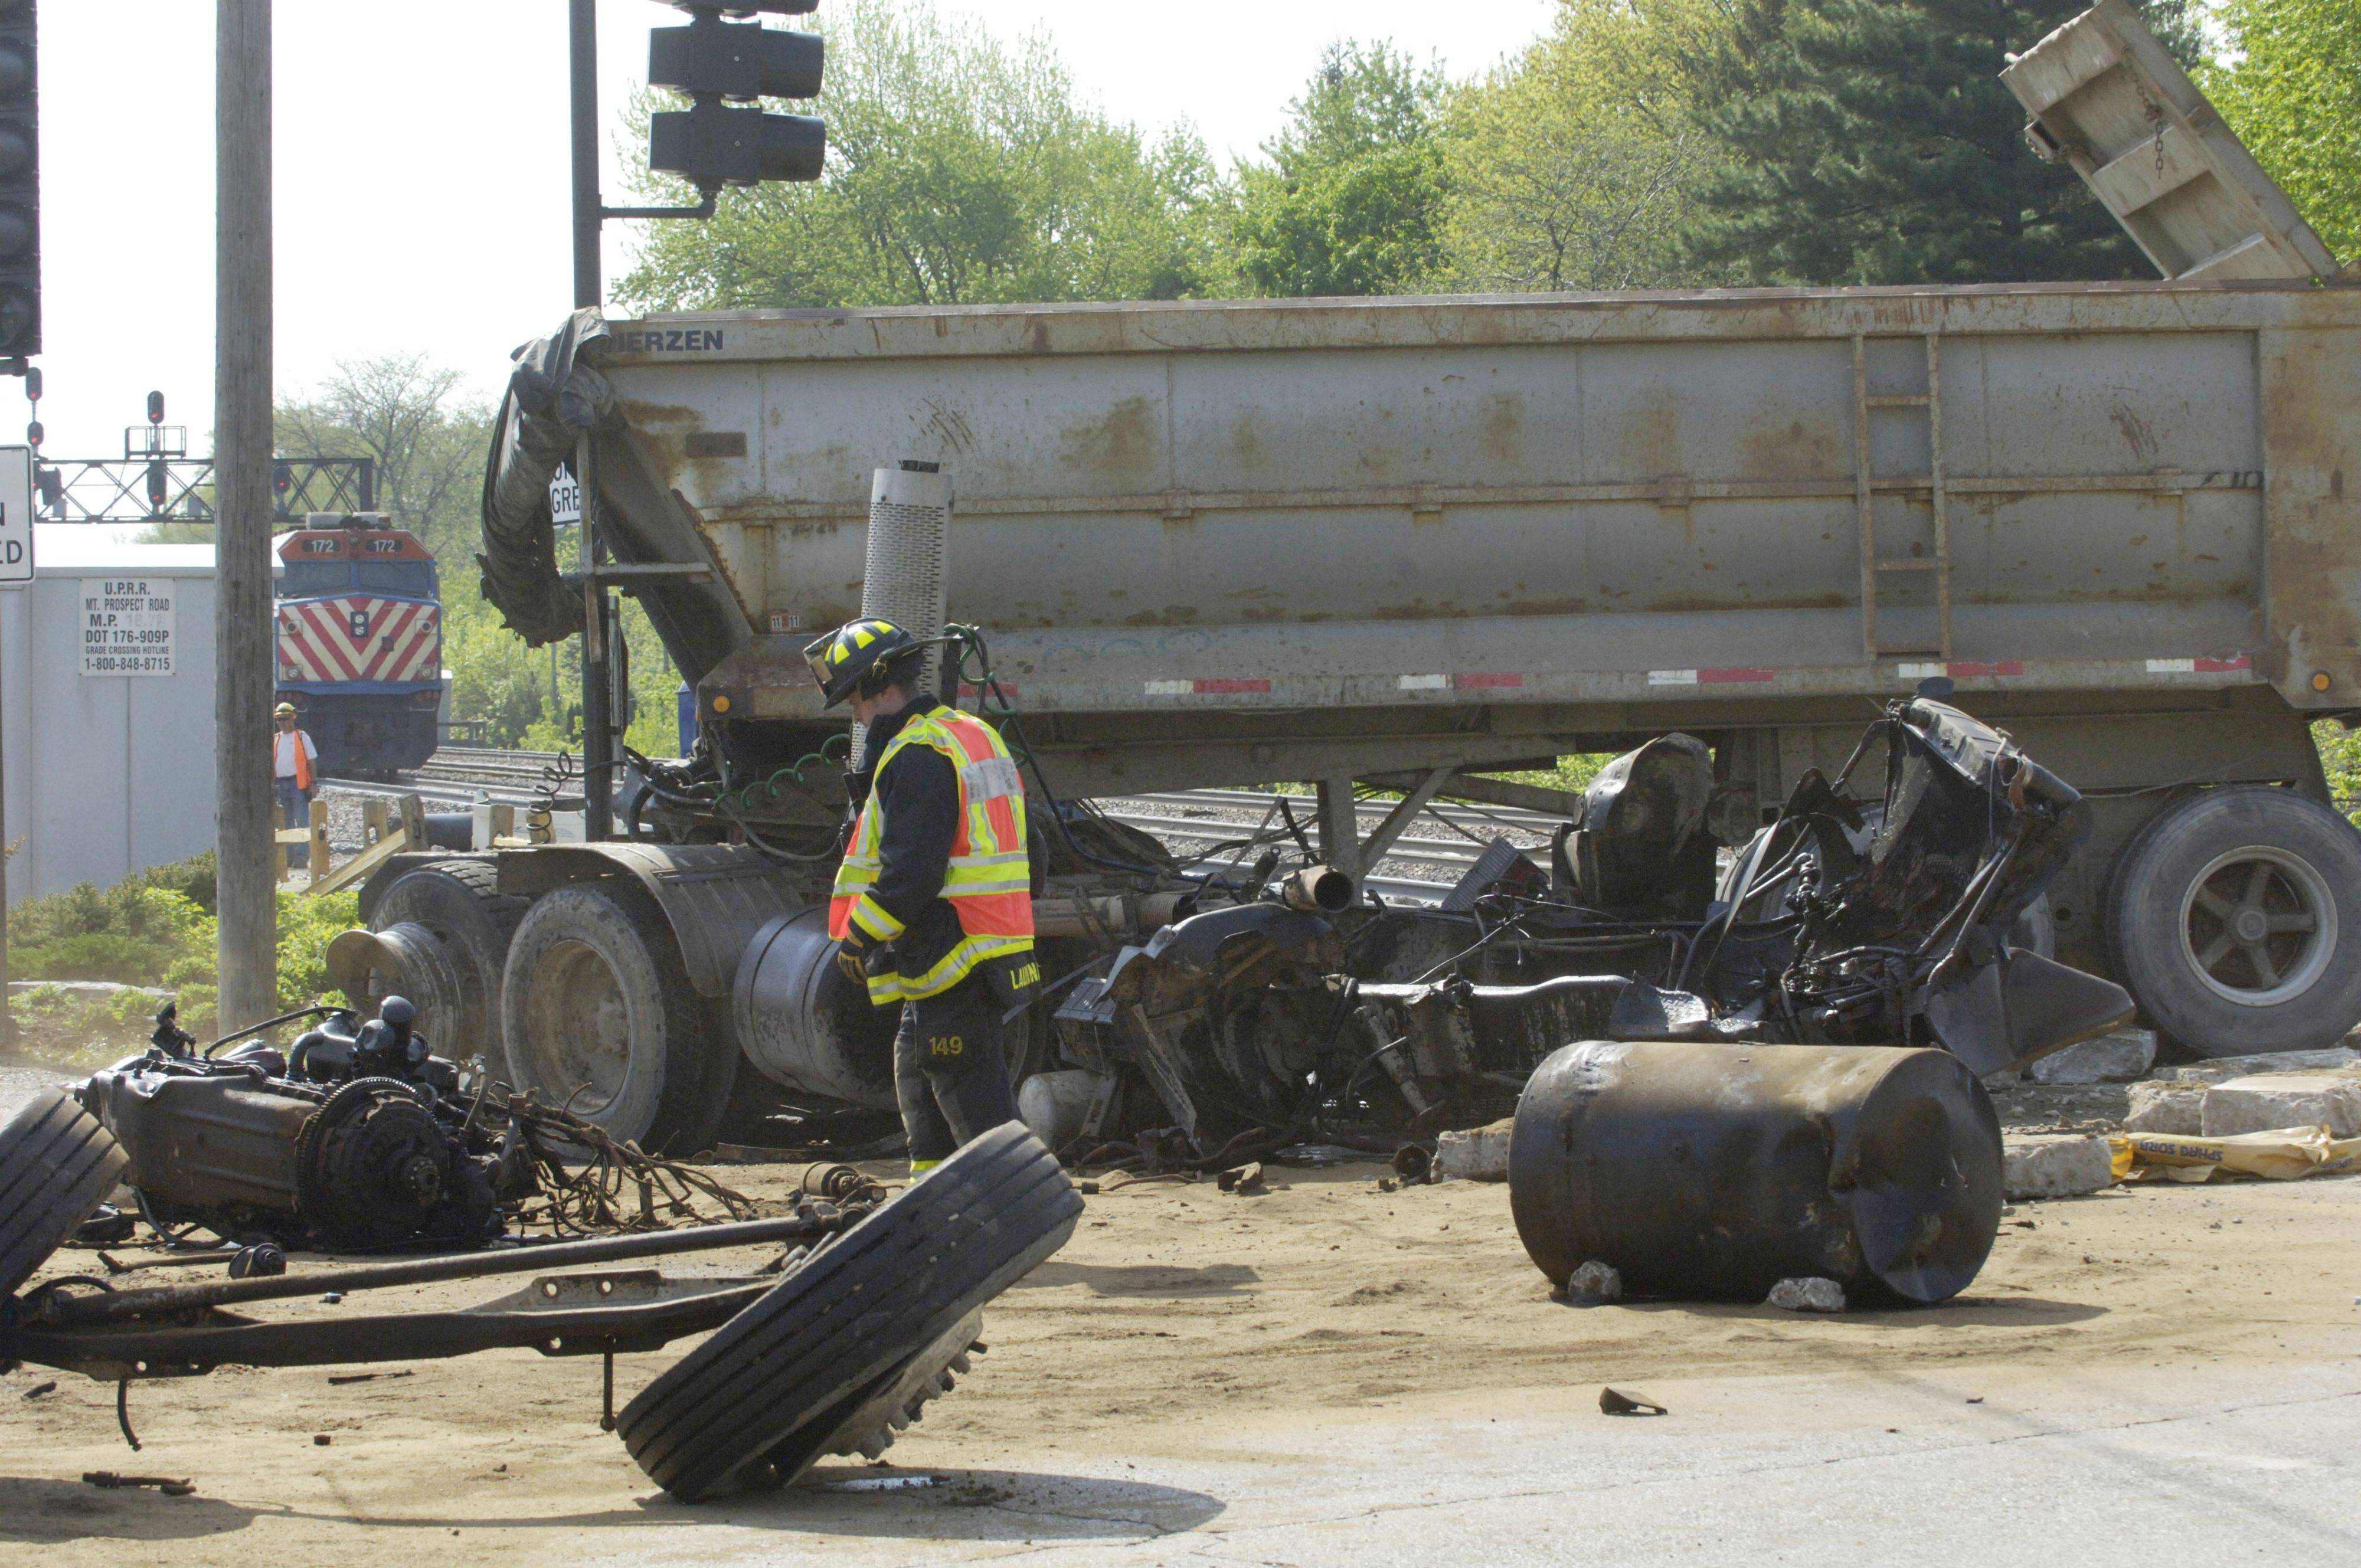 A Metra passenger train derailed after striking a loaded dump truck at Mount Prospect Road Friday morning.